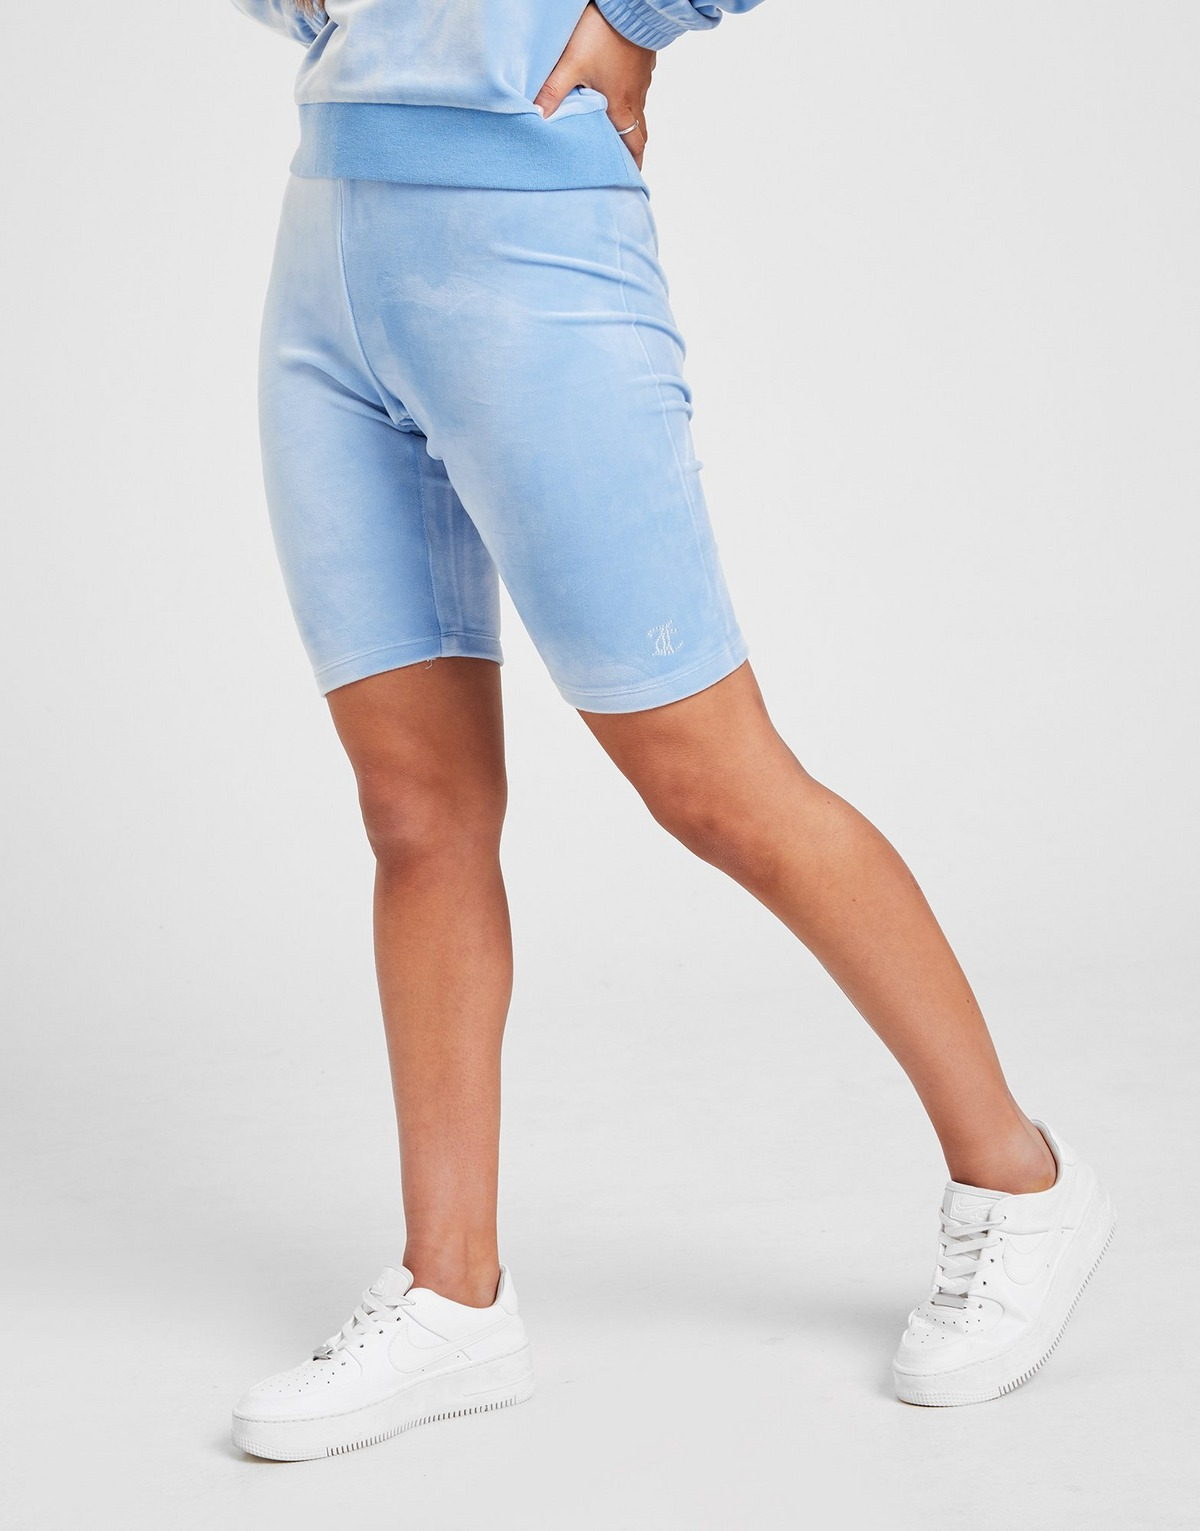 Juicy Couture Diamante Velour Cycle Shorts